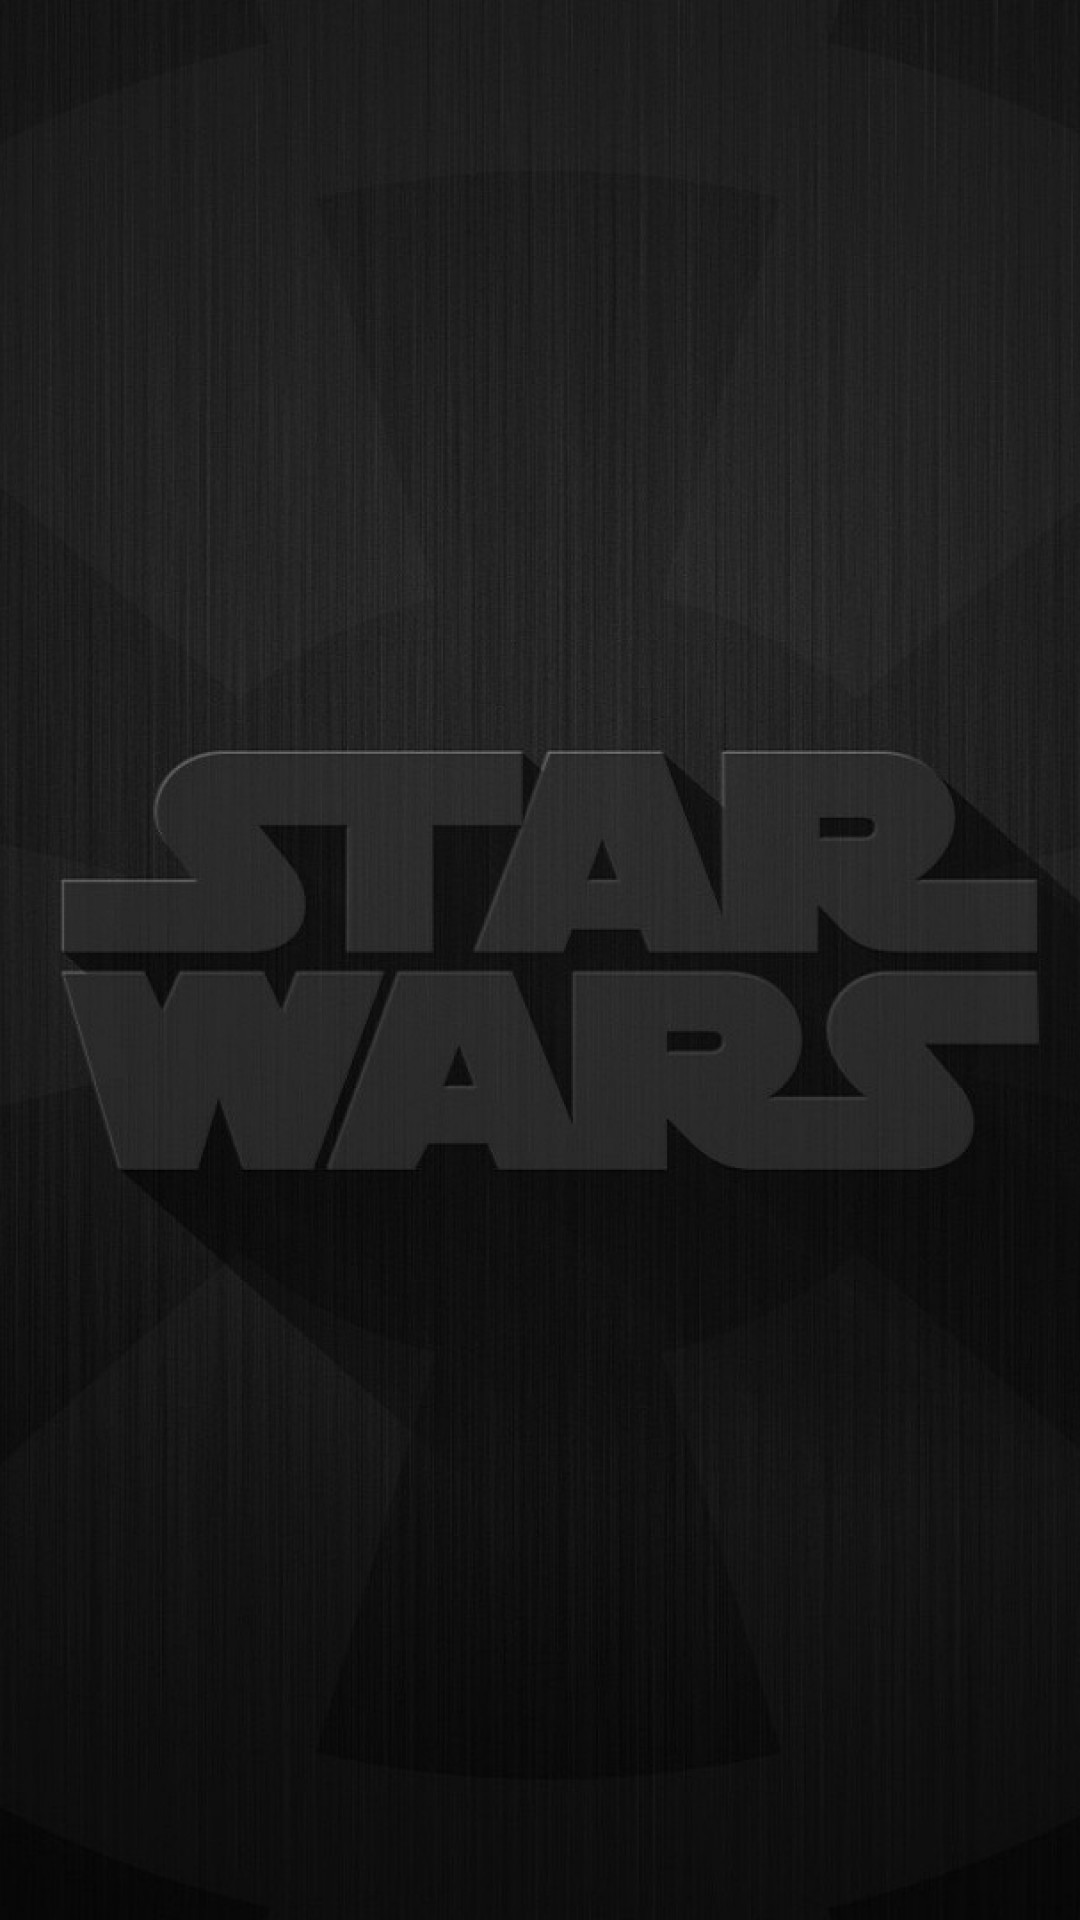 Black Star Wars Wallpaper Posted By Michelle Cunningham